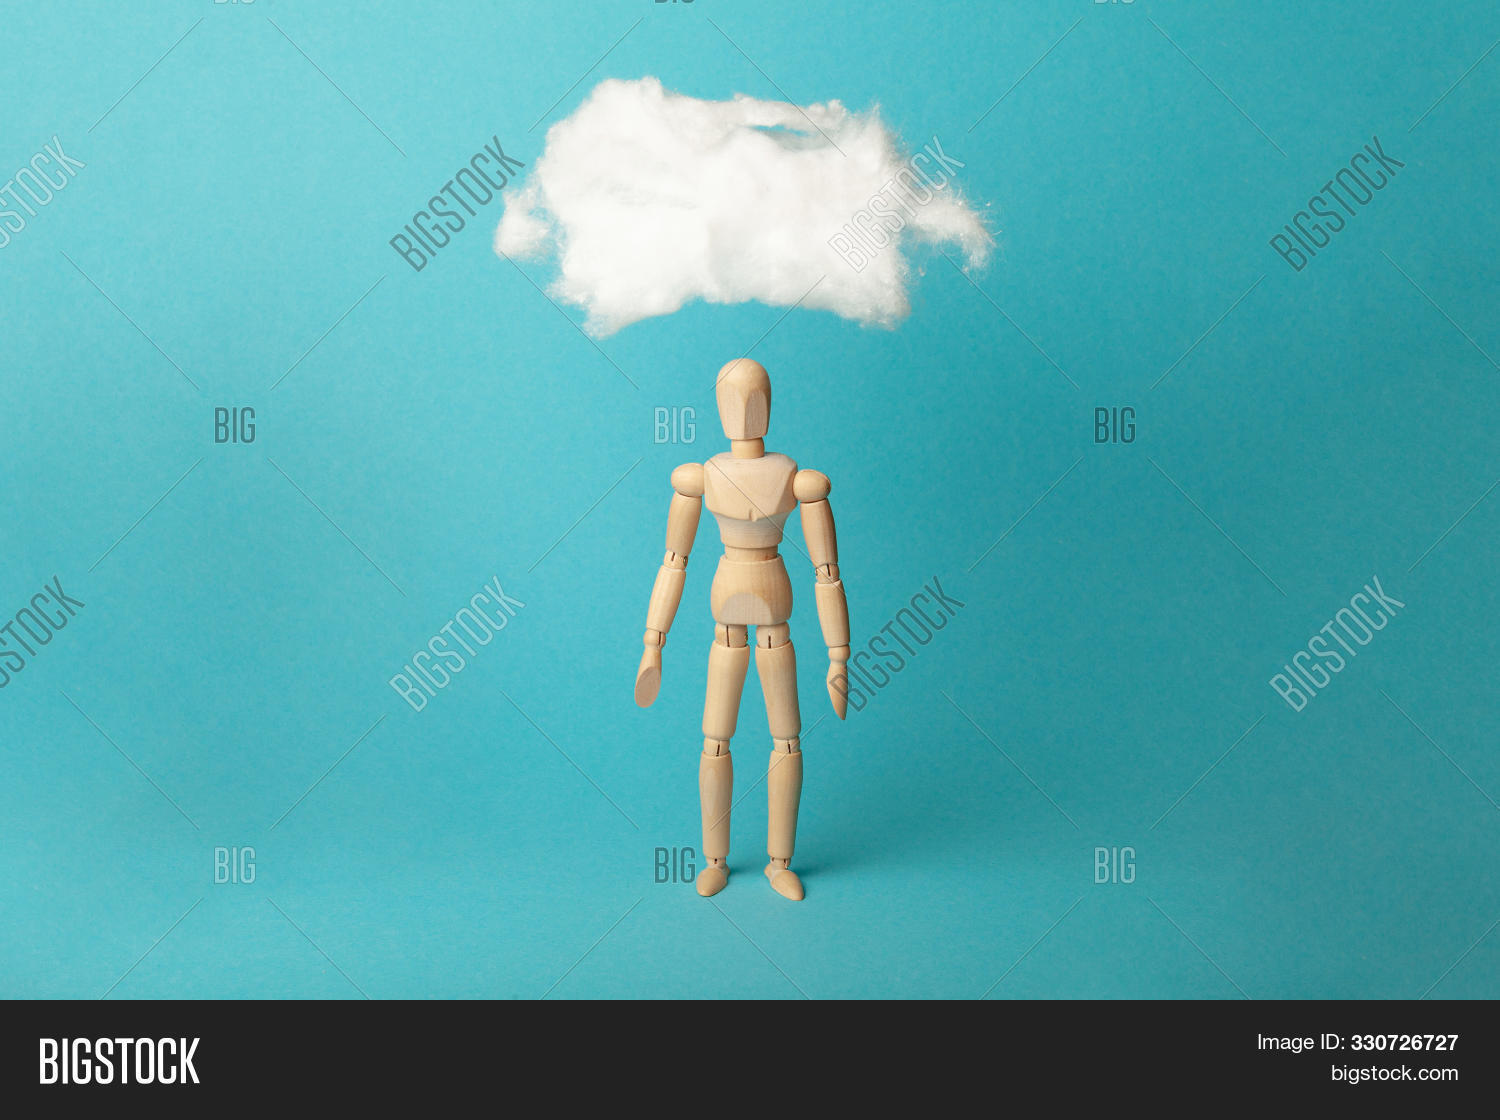 abstract,adult,background,blue,business,businessman,cartoon,cloud,communication,concept,creative,creativity,design,discussion,doubt,dream,element,fly,idea,imagination,inspiration,intelligence,isolated,leadership,male,man,manager,message,mind,one,opportunity,pensive,people,person,plan,portrait,problem,smart,solution,speech,strategy,success,think,thinking,thought,thoughtful